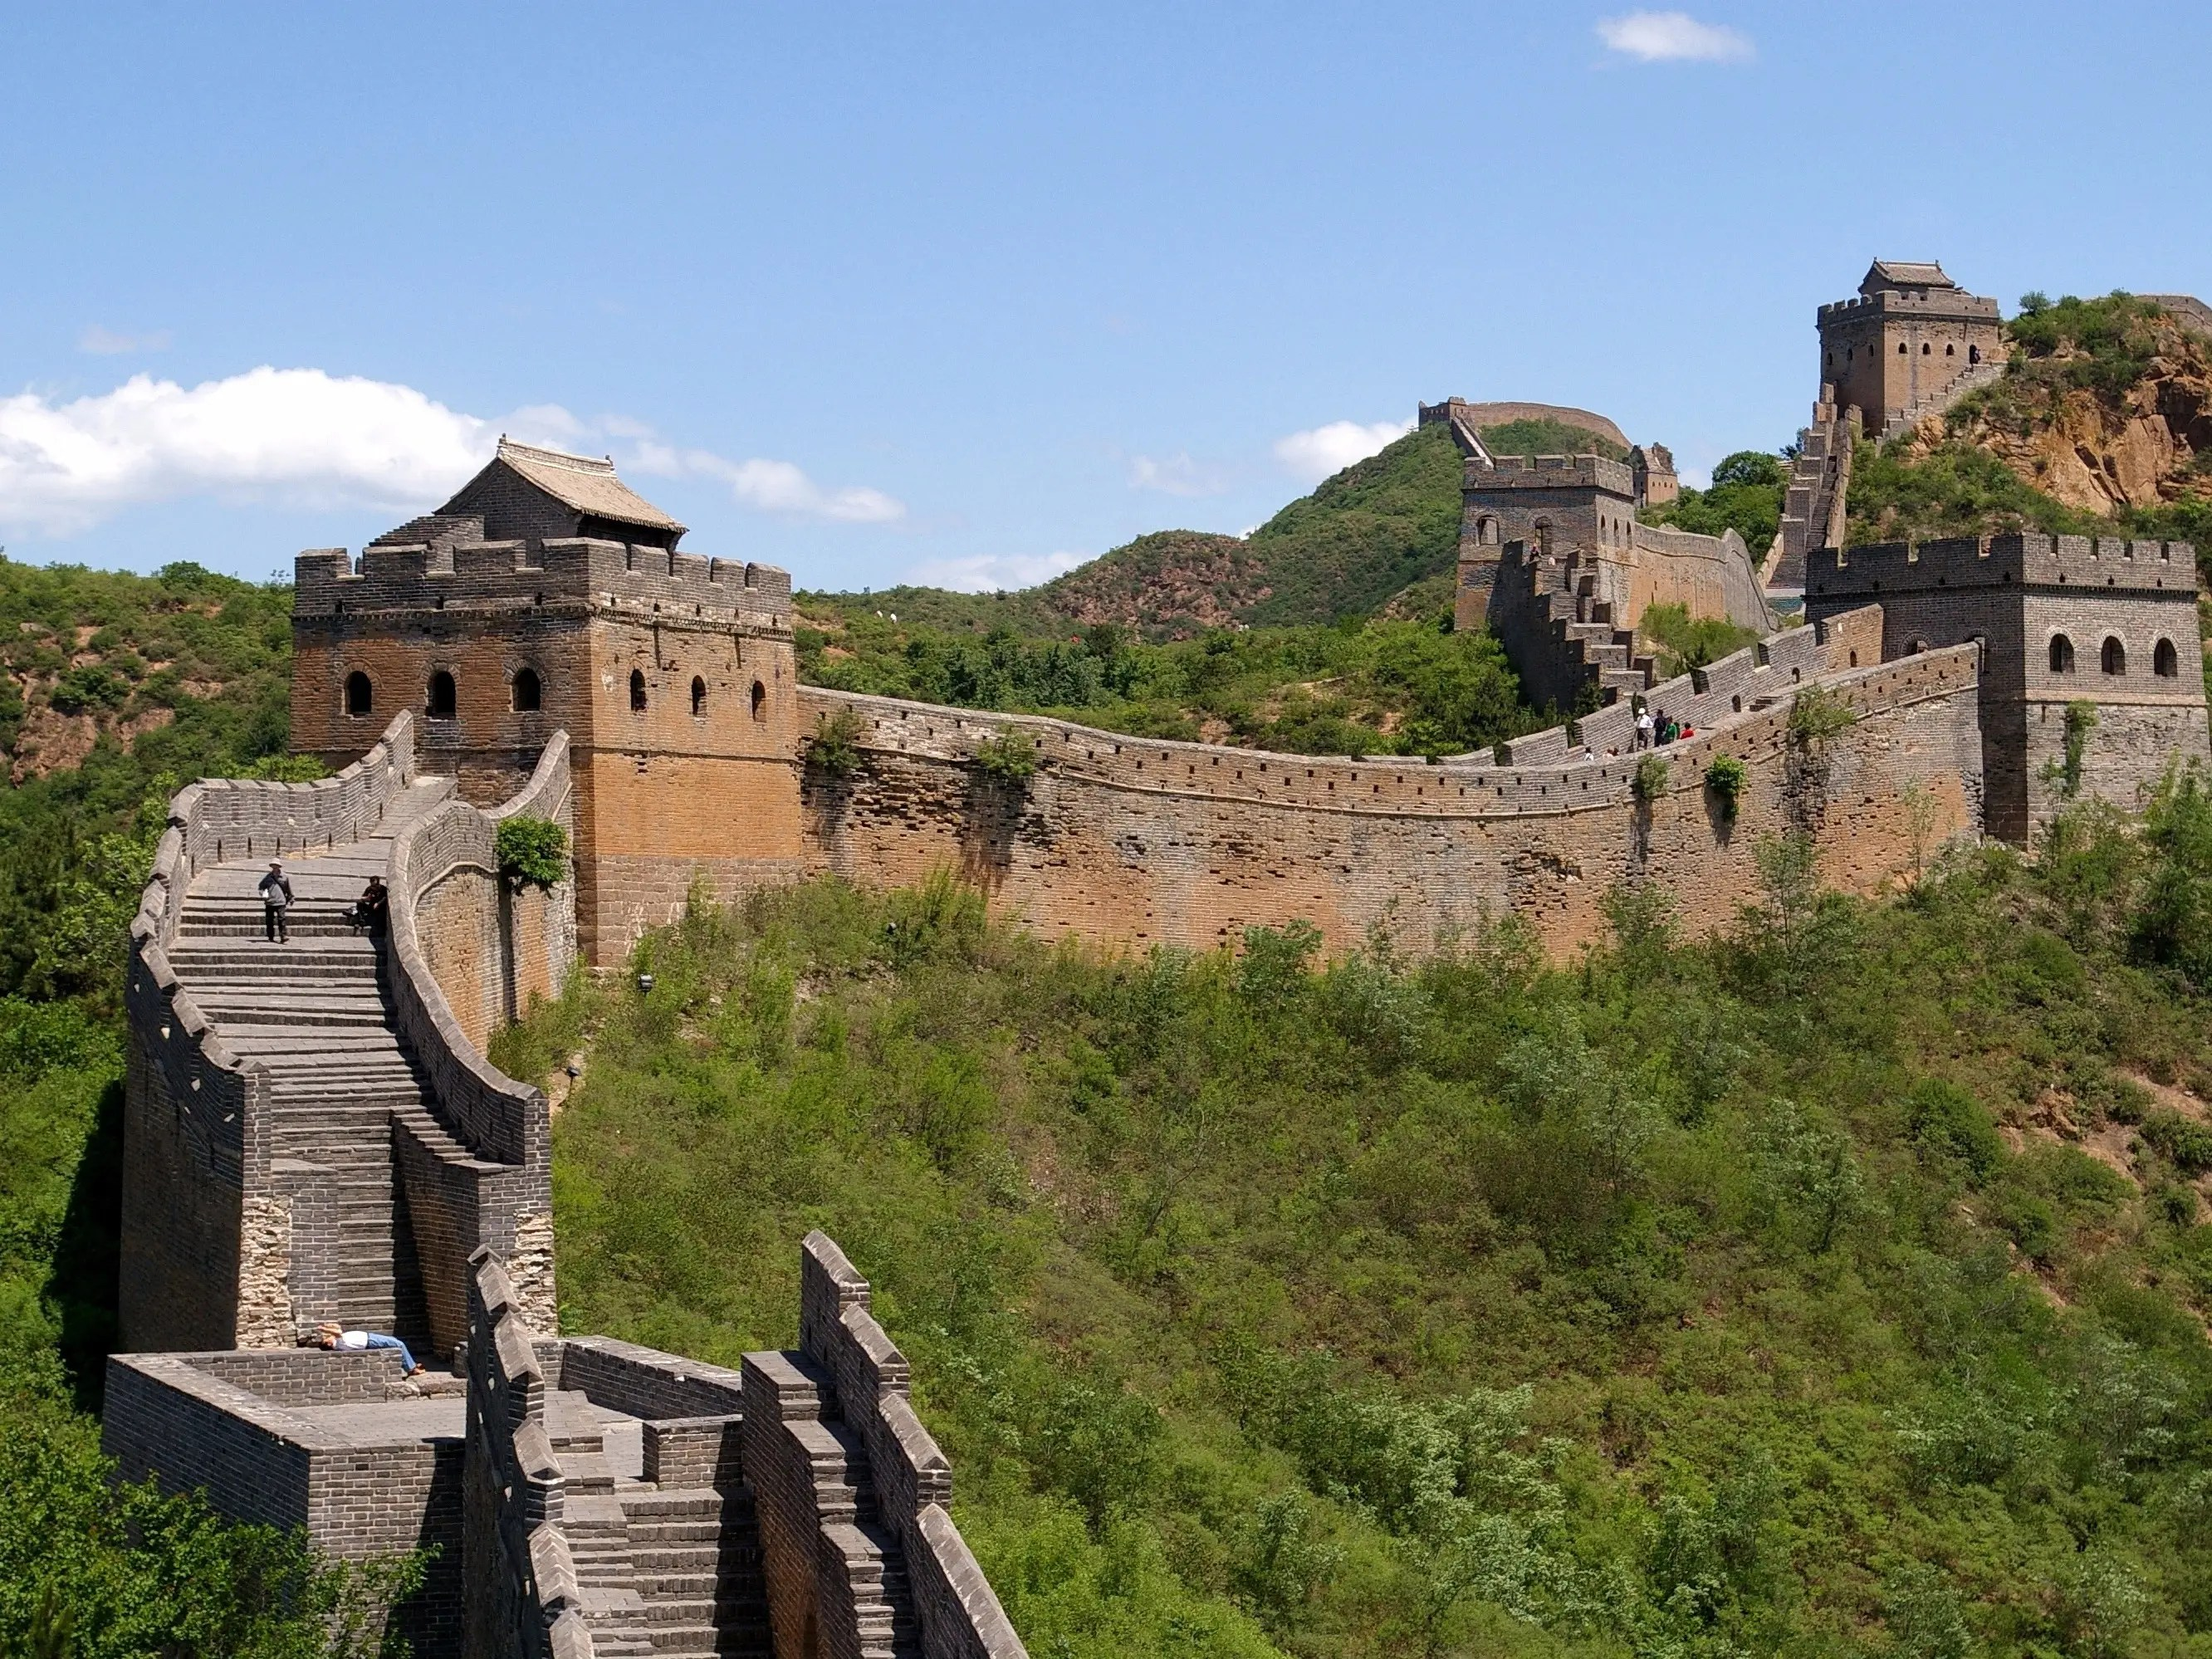 4. Great Wall of China, China